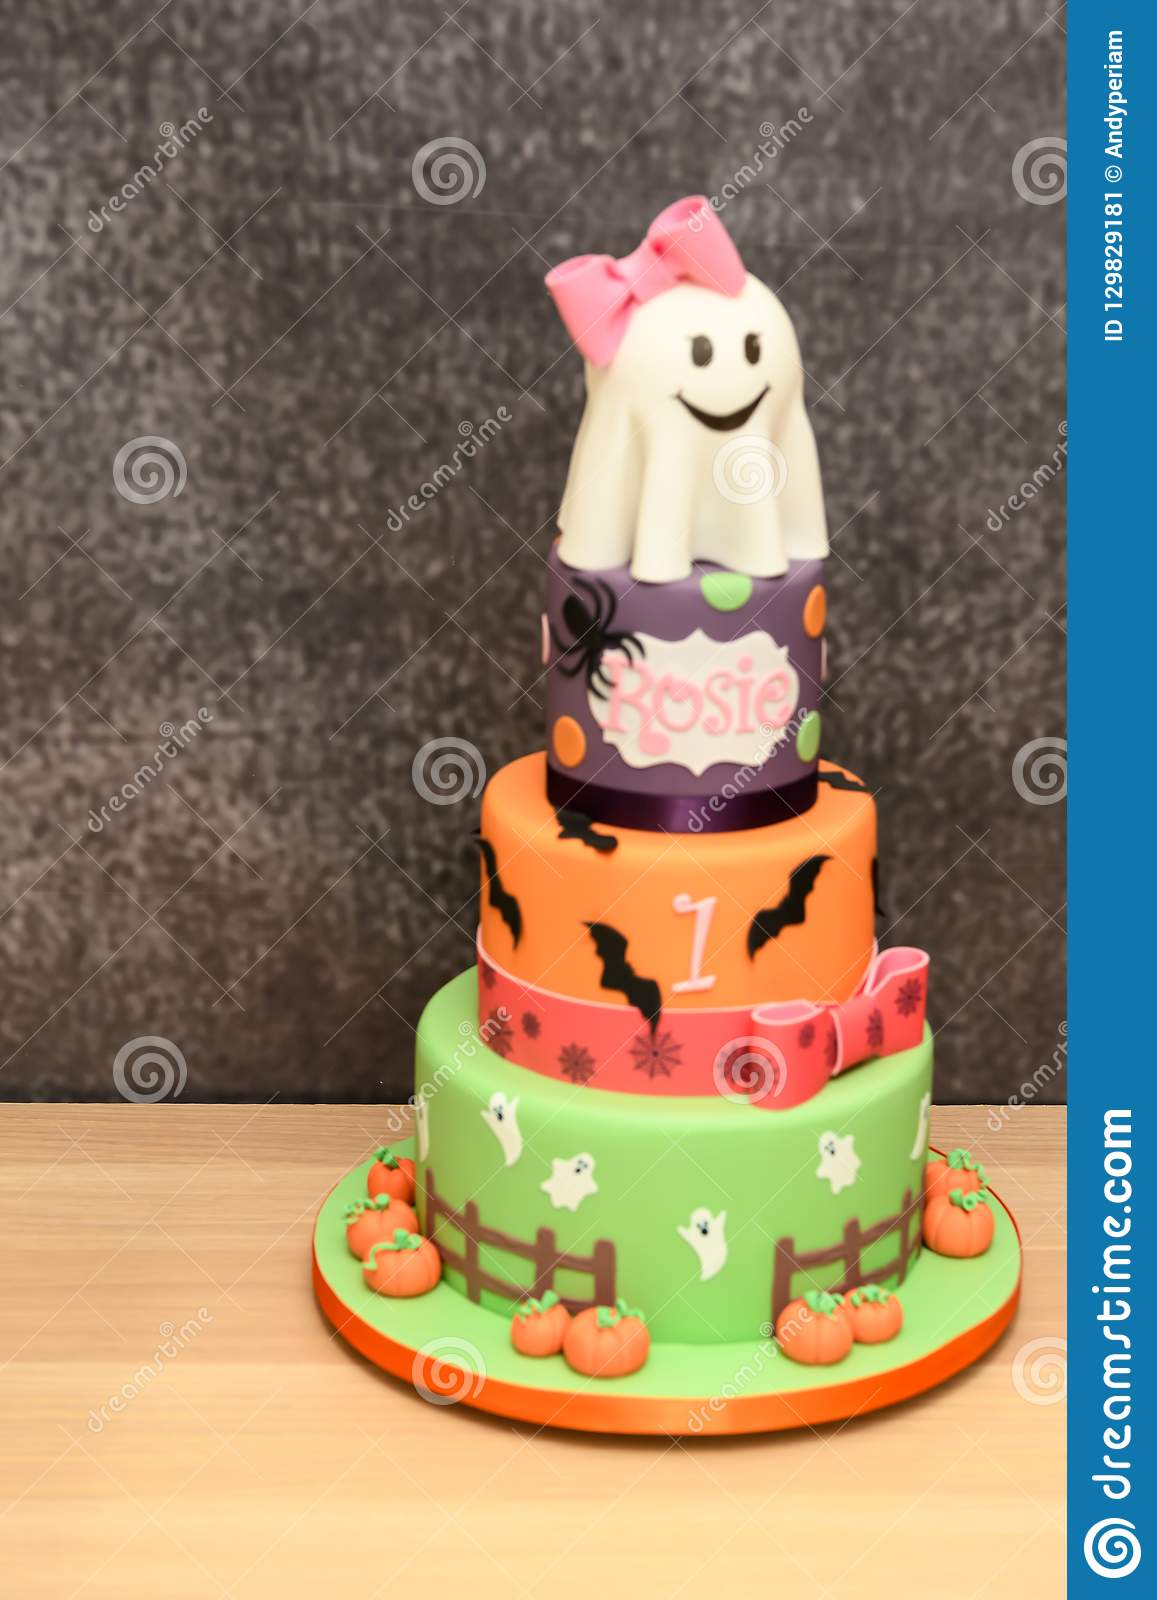 Outstanding Halloween Cake Isolated Stock Image Image Of Orange 129829181 Funny Birthday Cards Online Barepcheapnameinfo